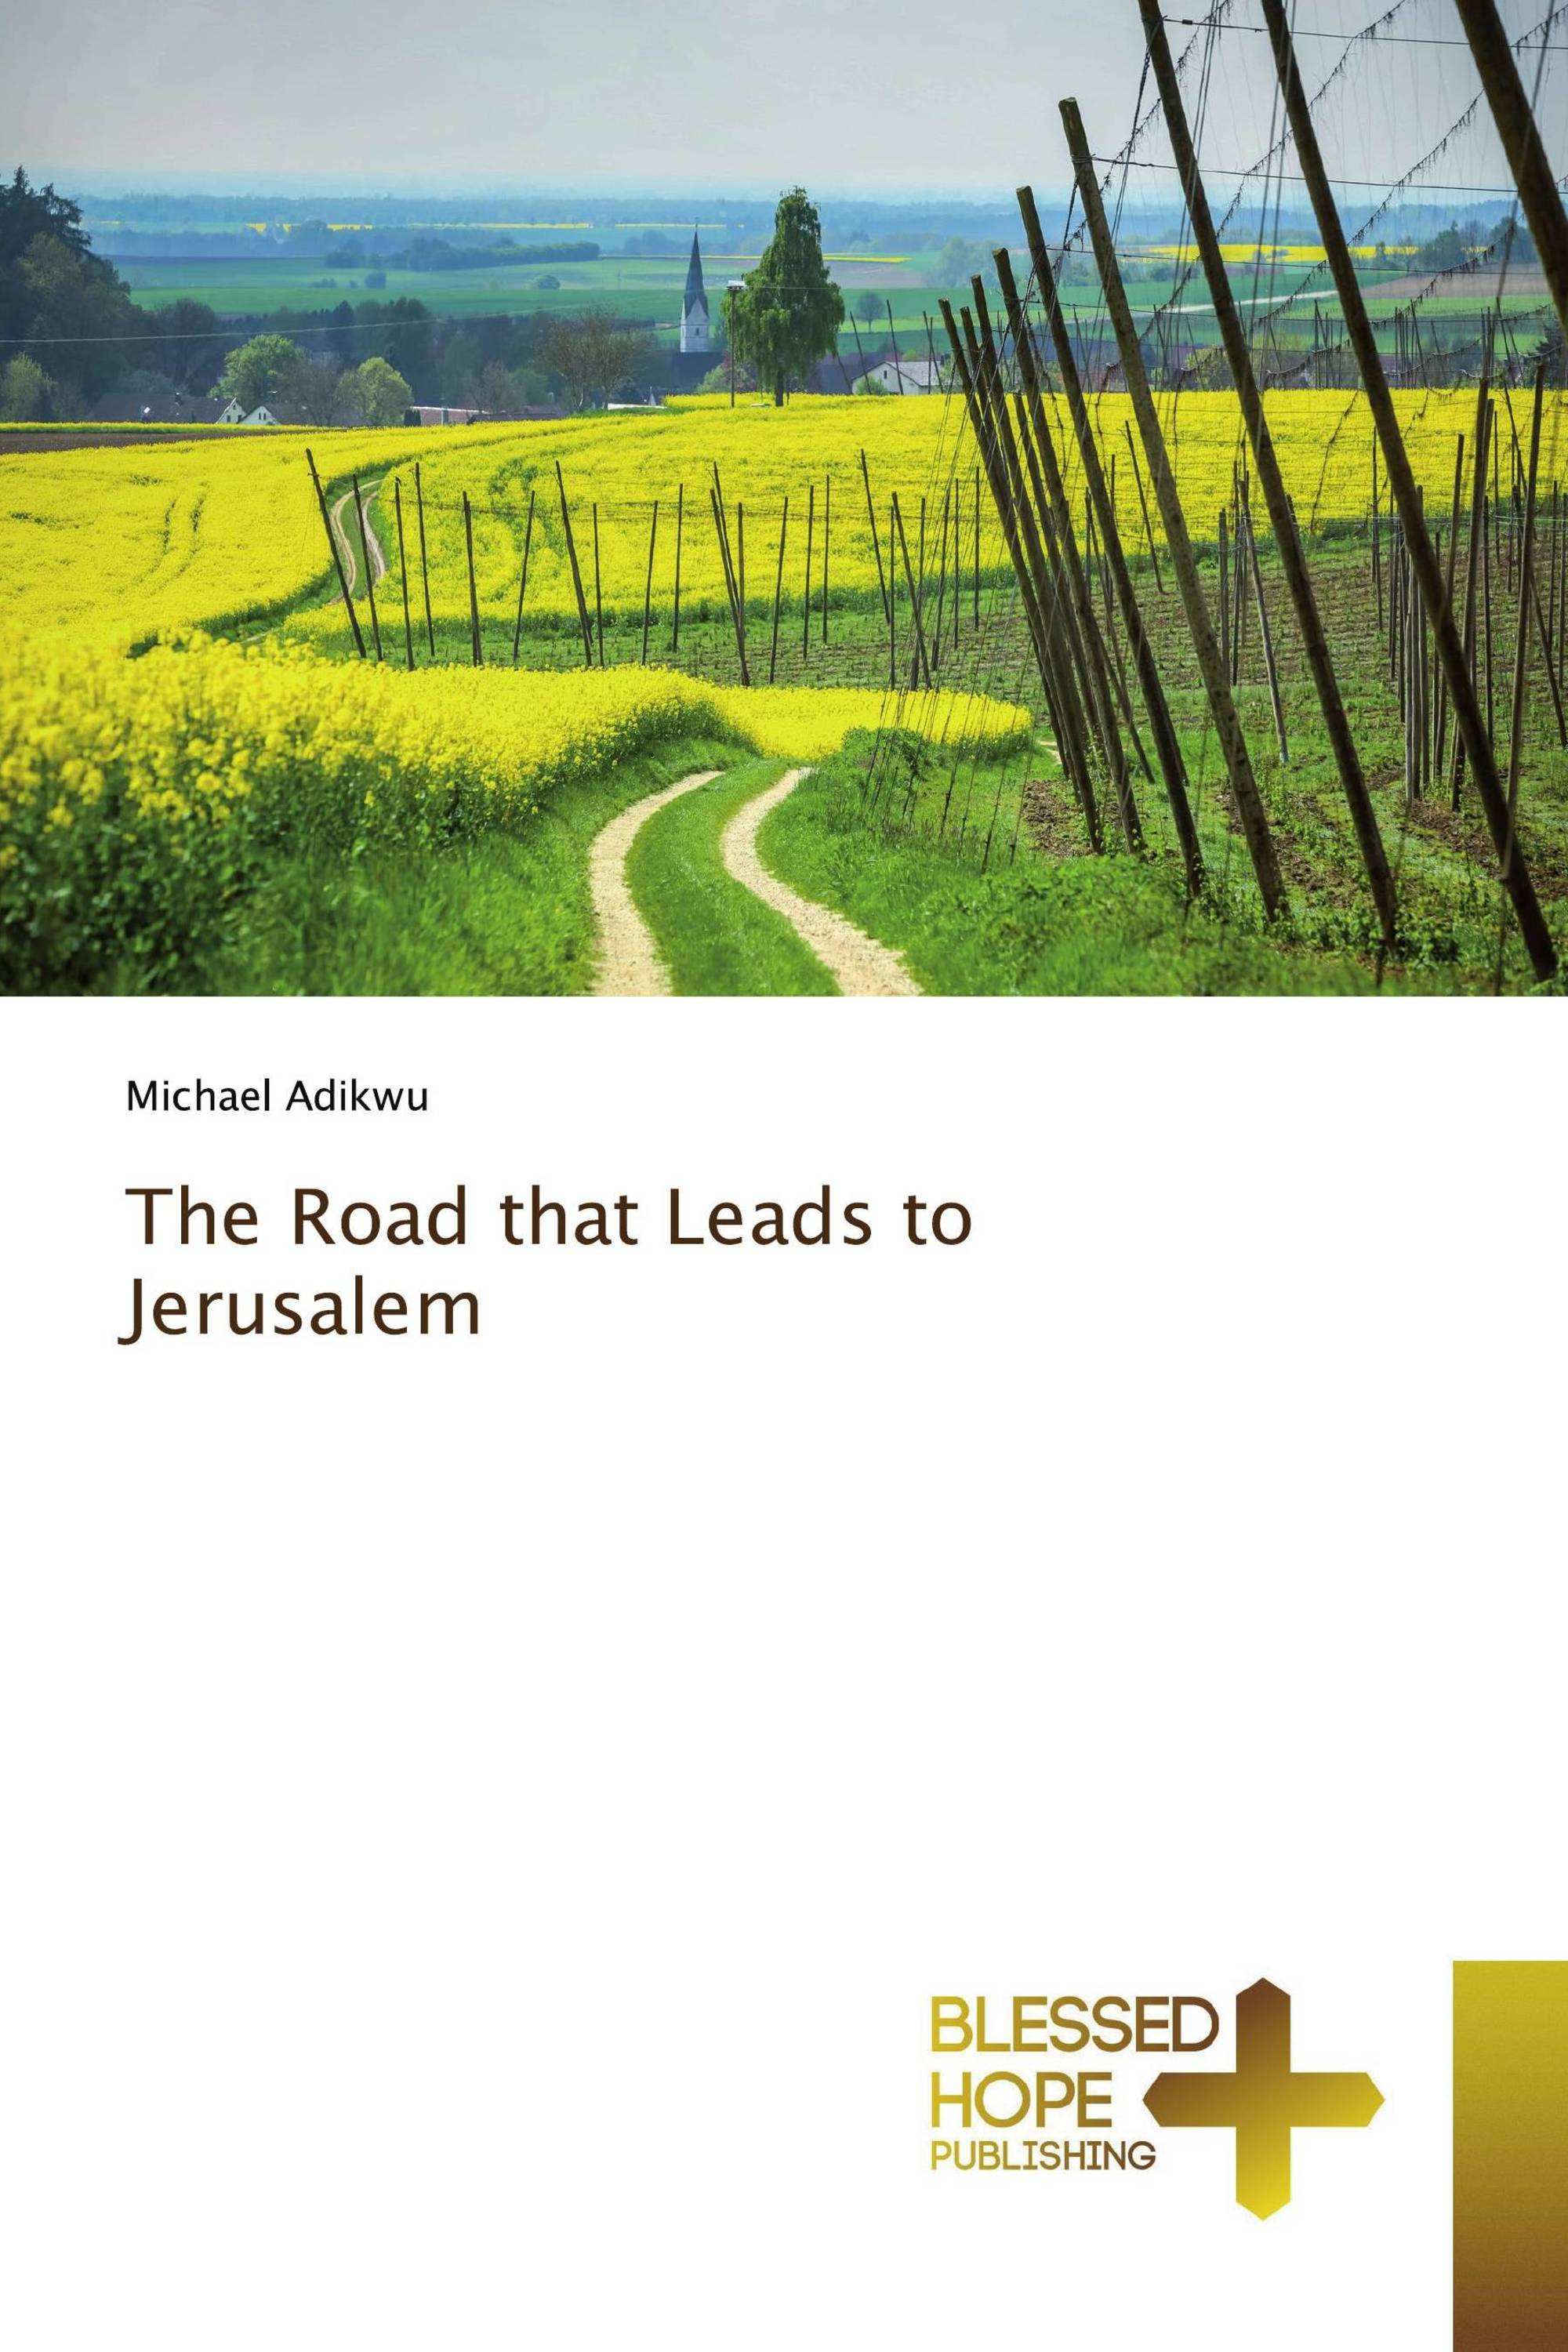 The Road that Leads to Jerusalem